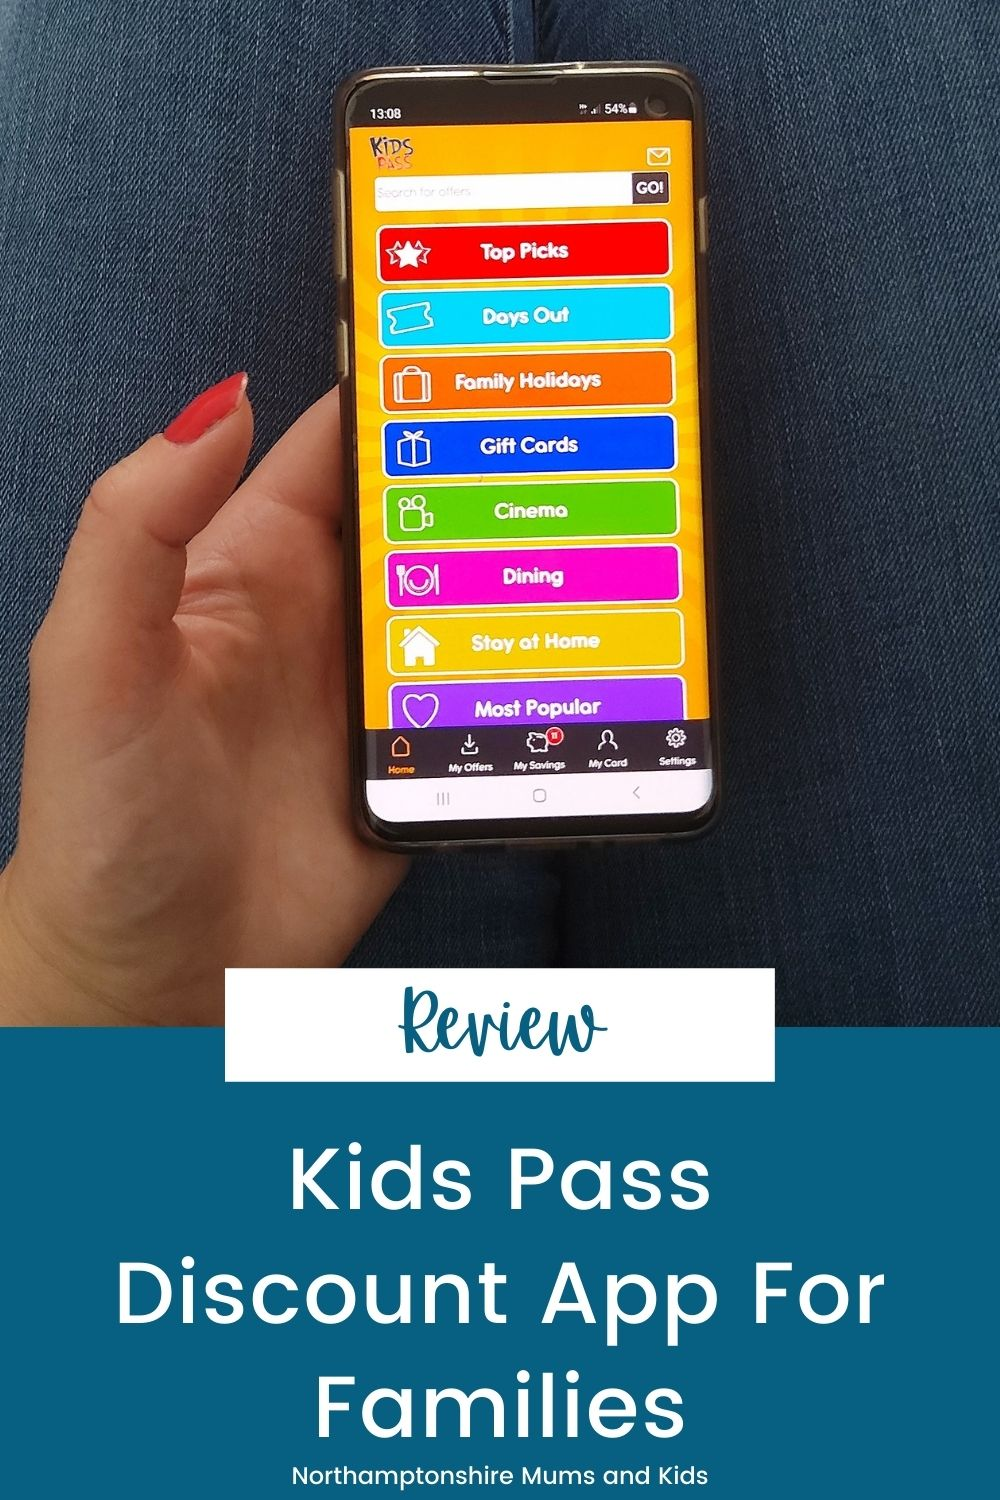 Kids Pass - An Awesome Discount App For Families